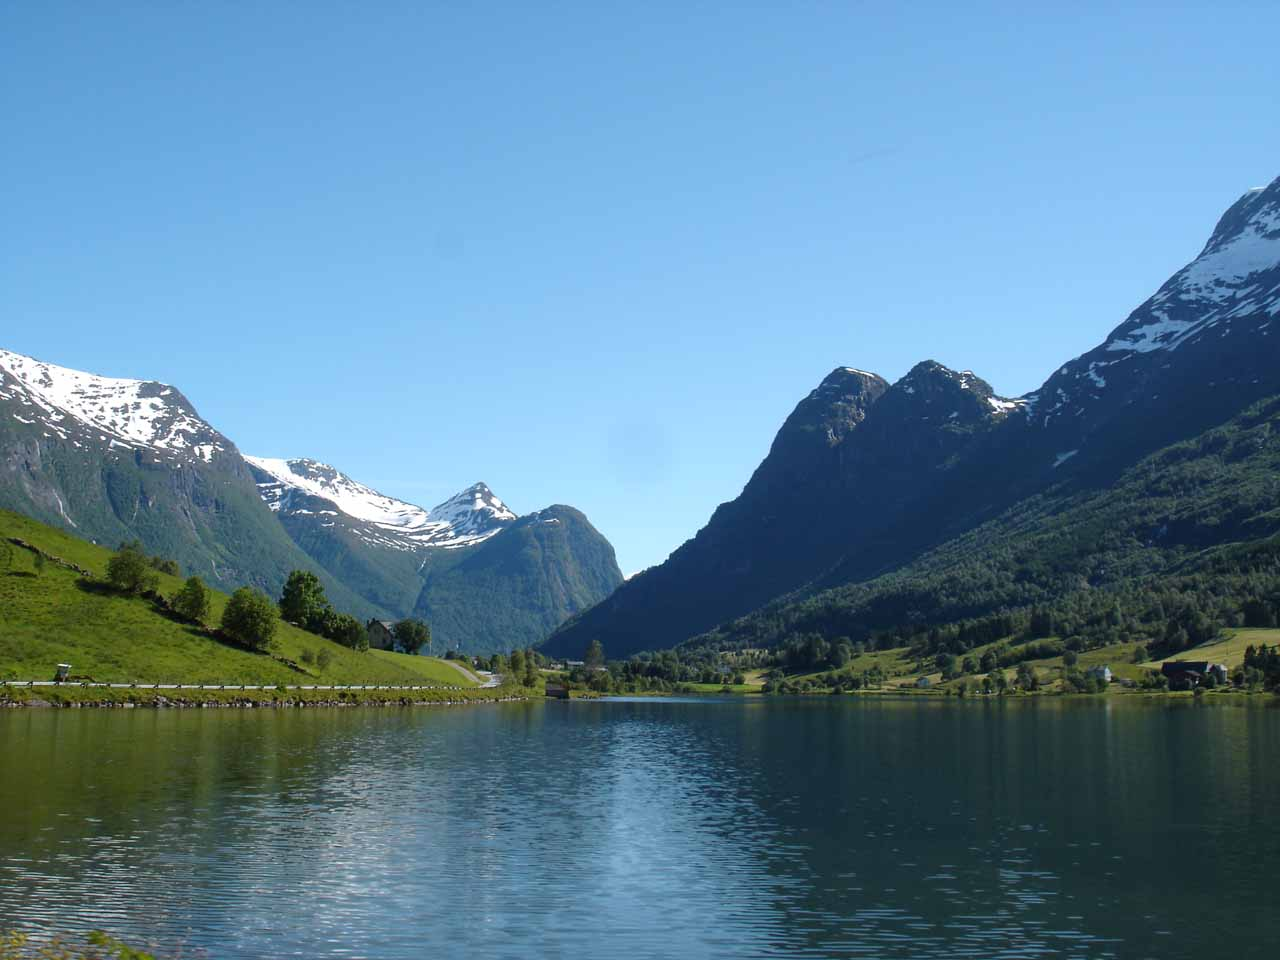 The next valley to the east of Myklebustdalen was Oldendalen, which was on the way to the beautiful Briksdalbreen Glacier, but the valley yielded beautiful scenes like this